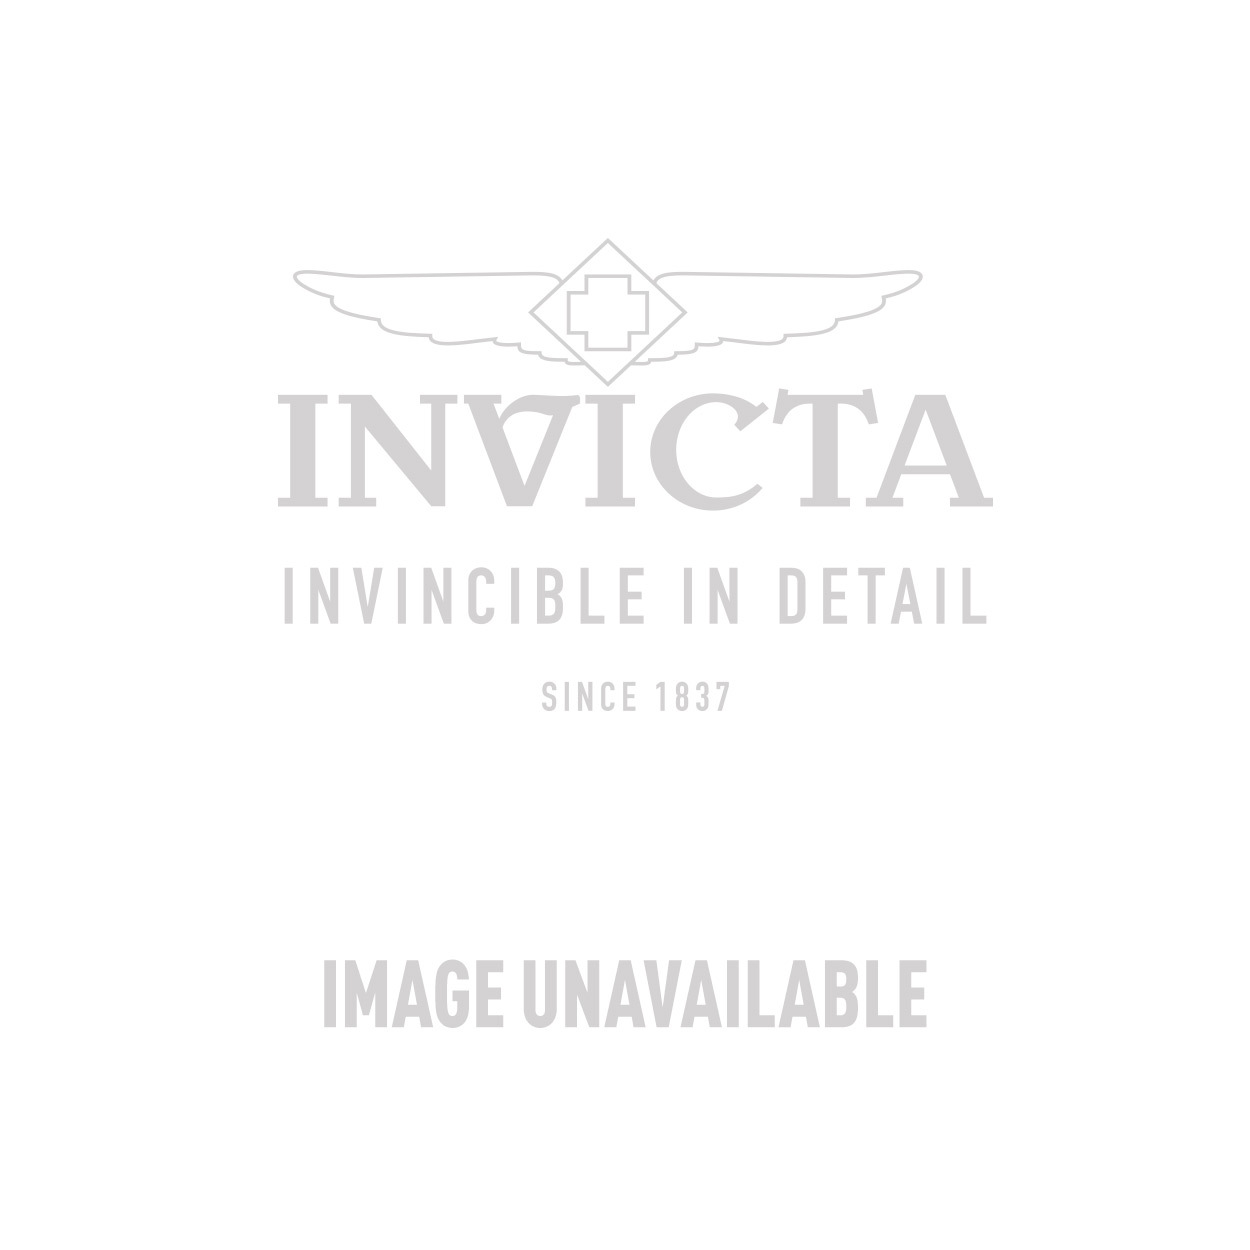 Invicta  Reserve Ocean Speedway  Quartz Watch - Black, Stainless Steel case Stainless Steel band - Model 10589